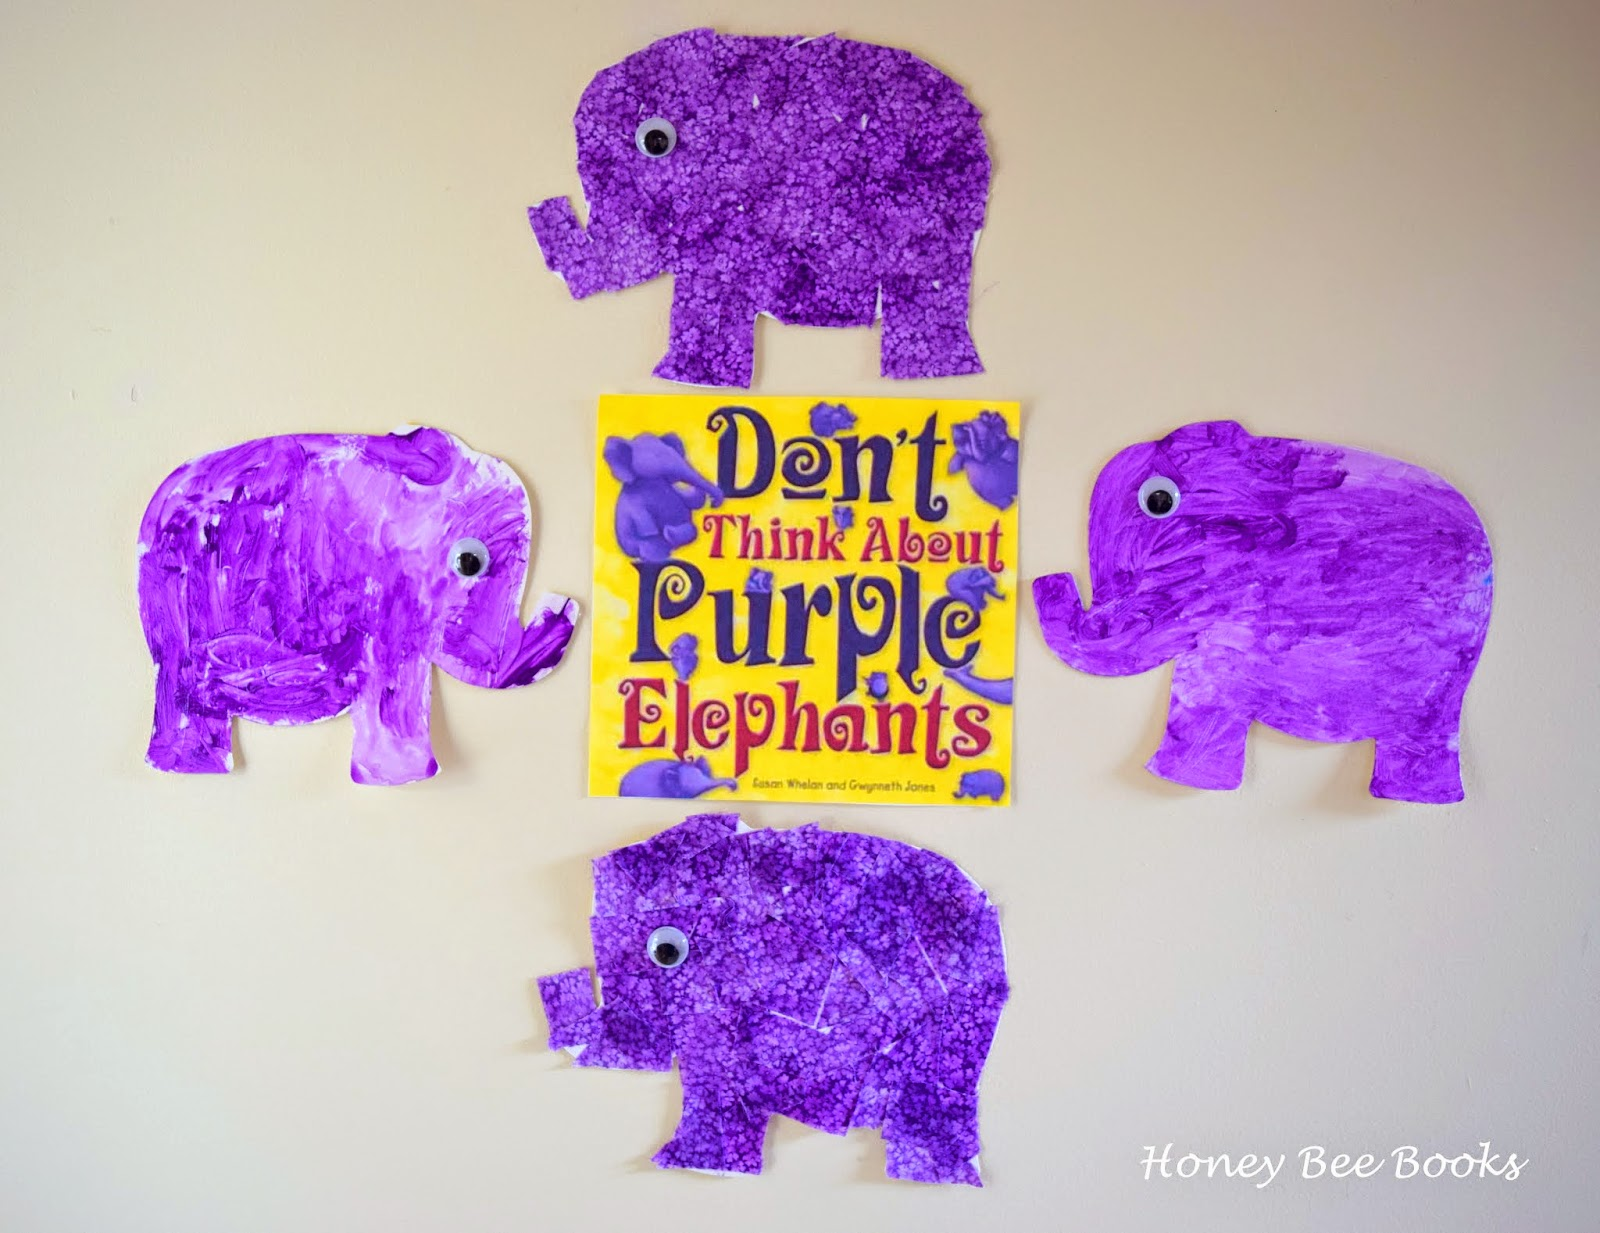 Review of Don't Think About Purple Elephants